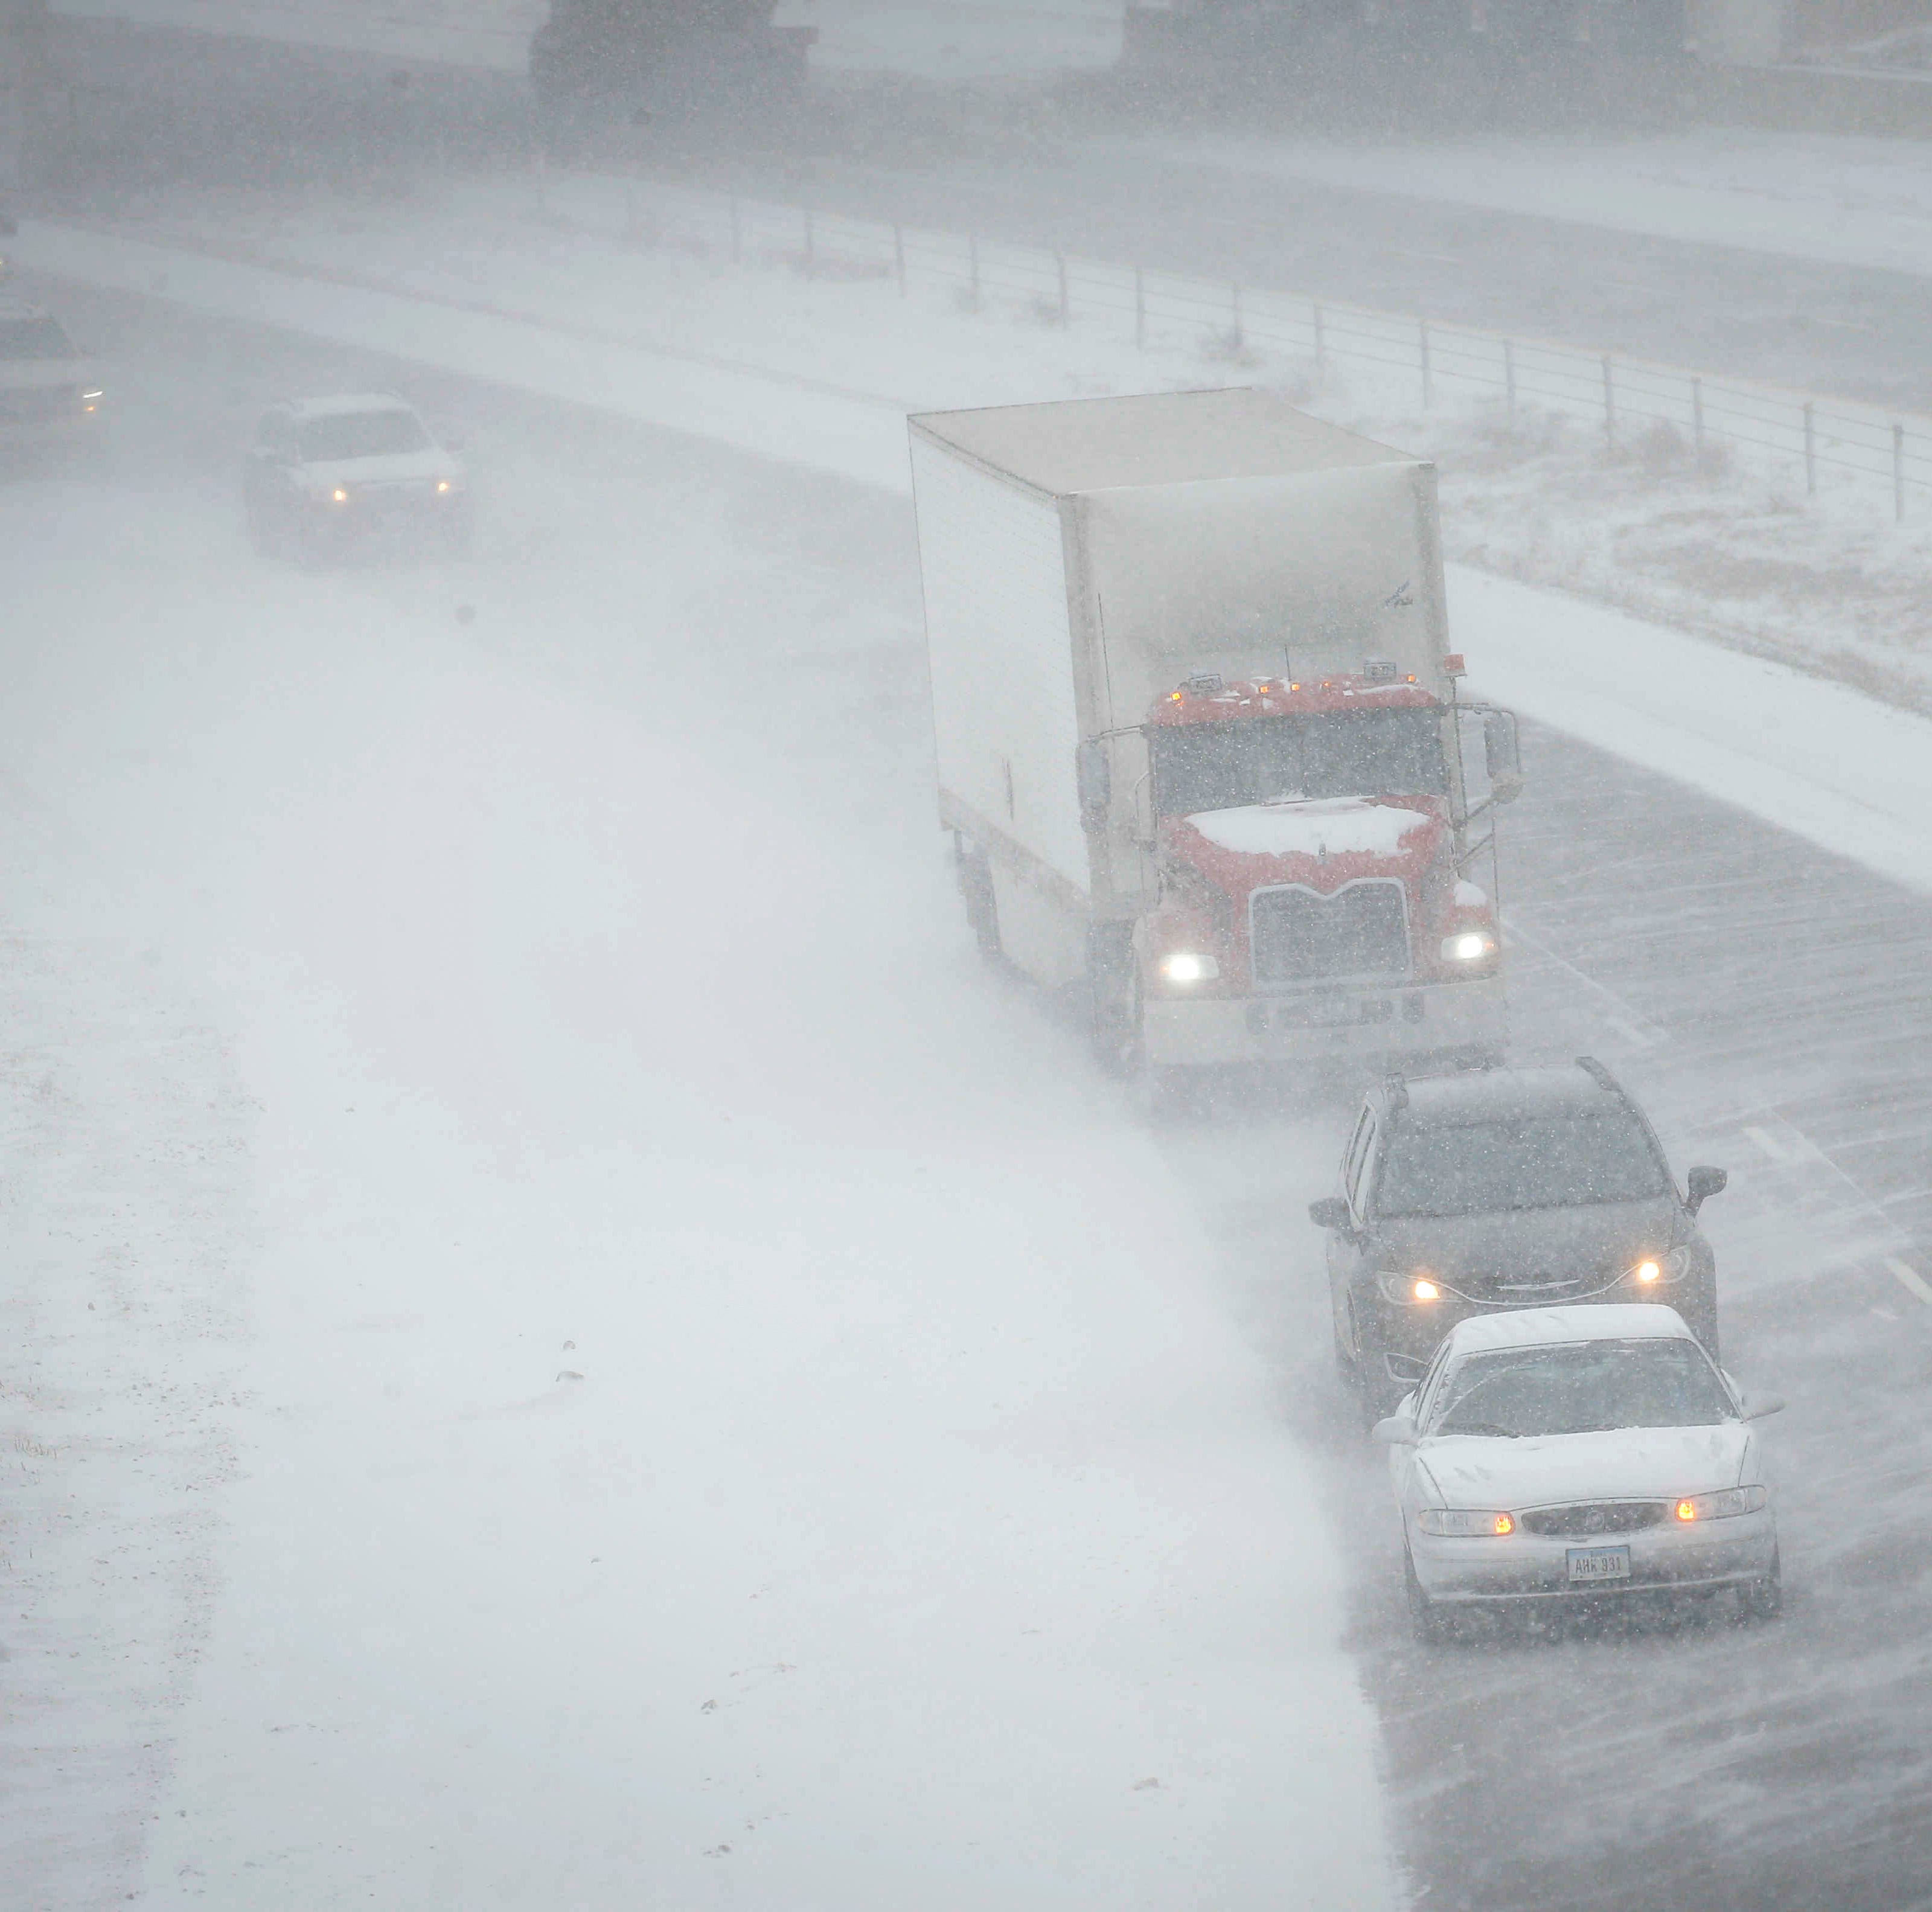 'Extremely difficult' morning commutes expected as Iowa gets slammed by another snowstorm